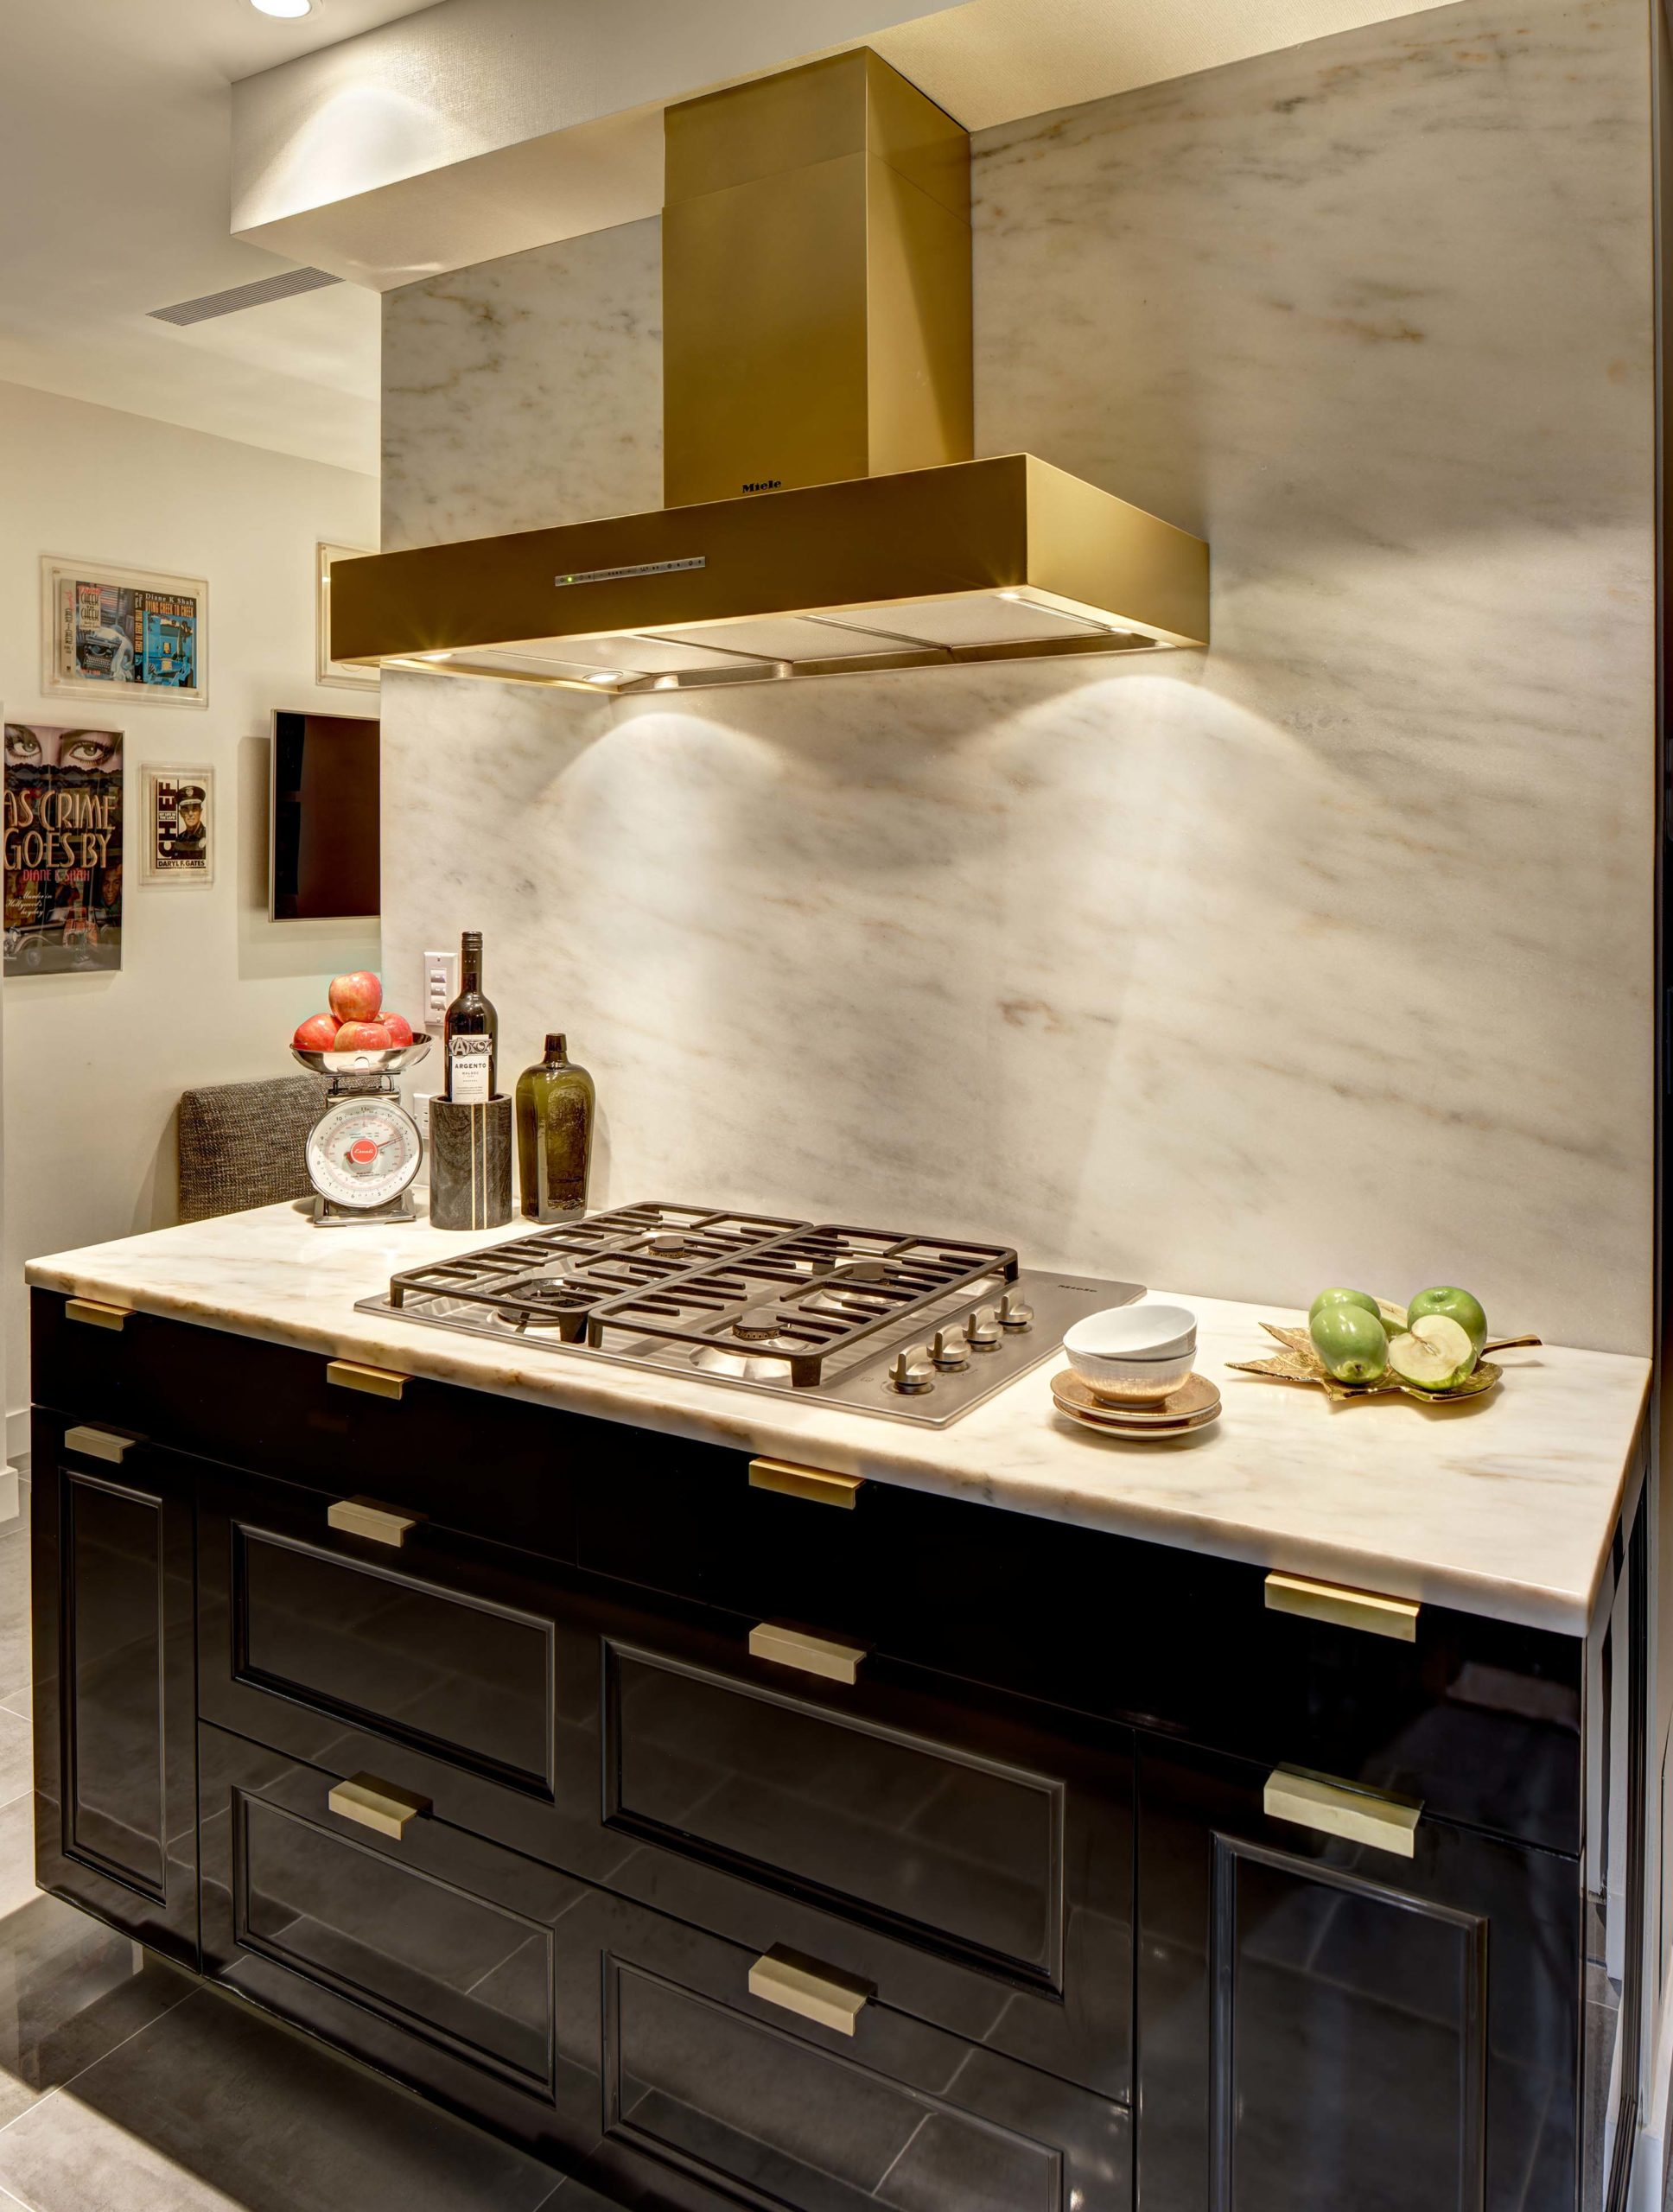 Townhouse Kitchens Image 3